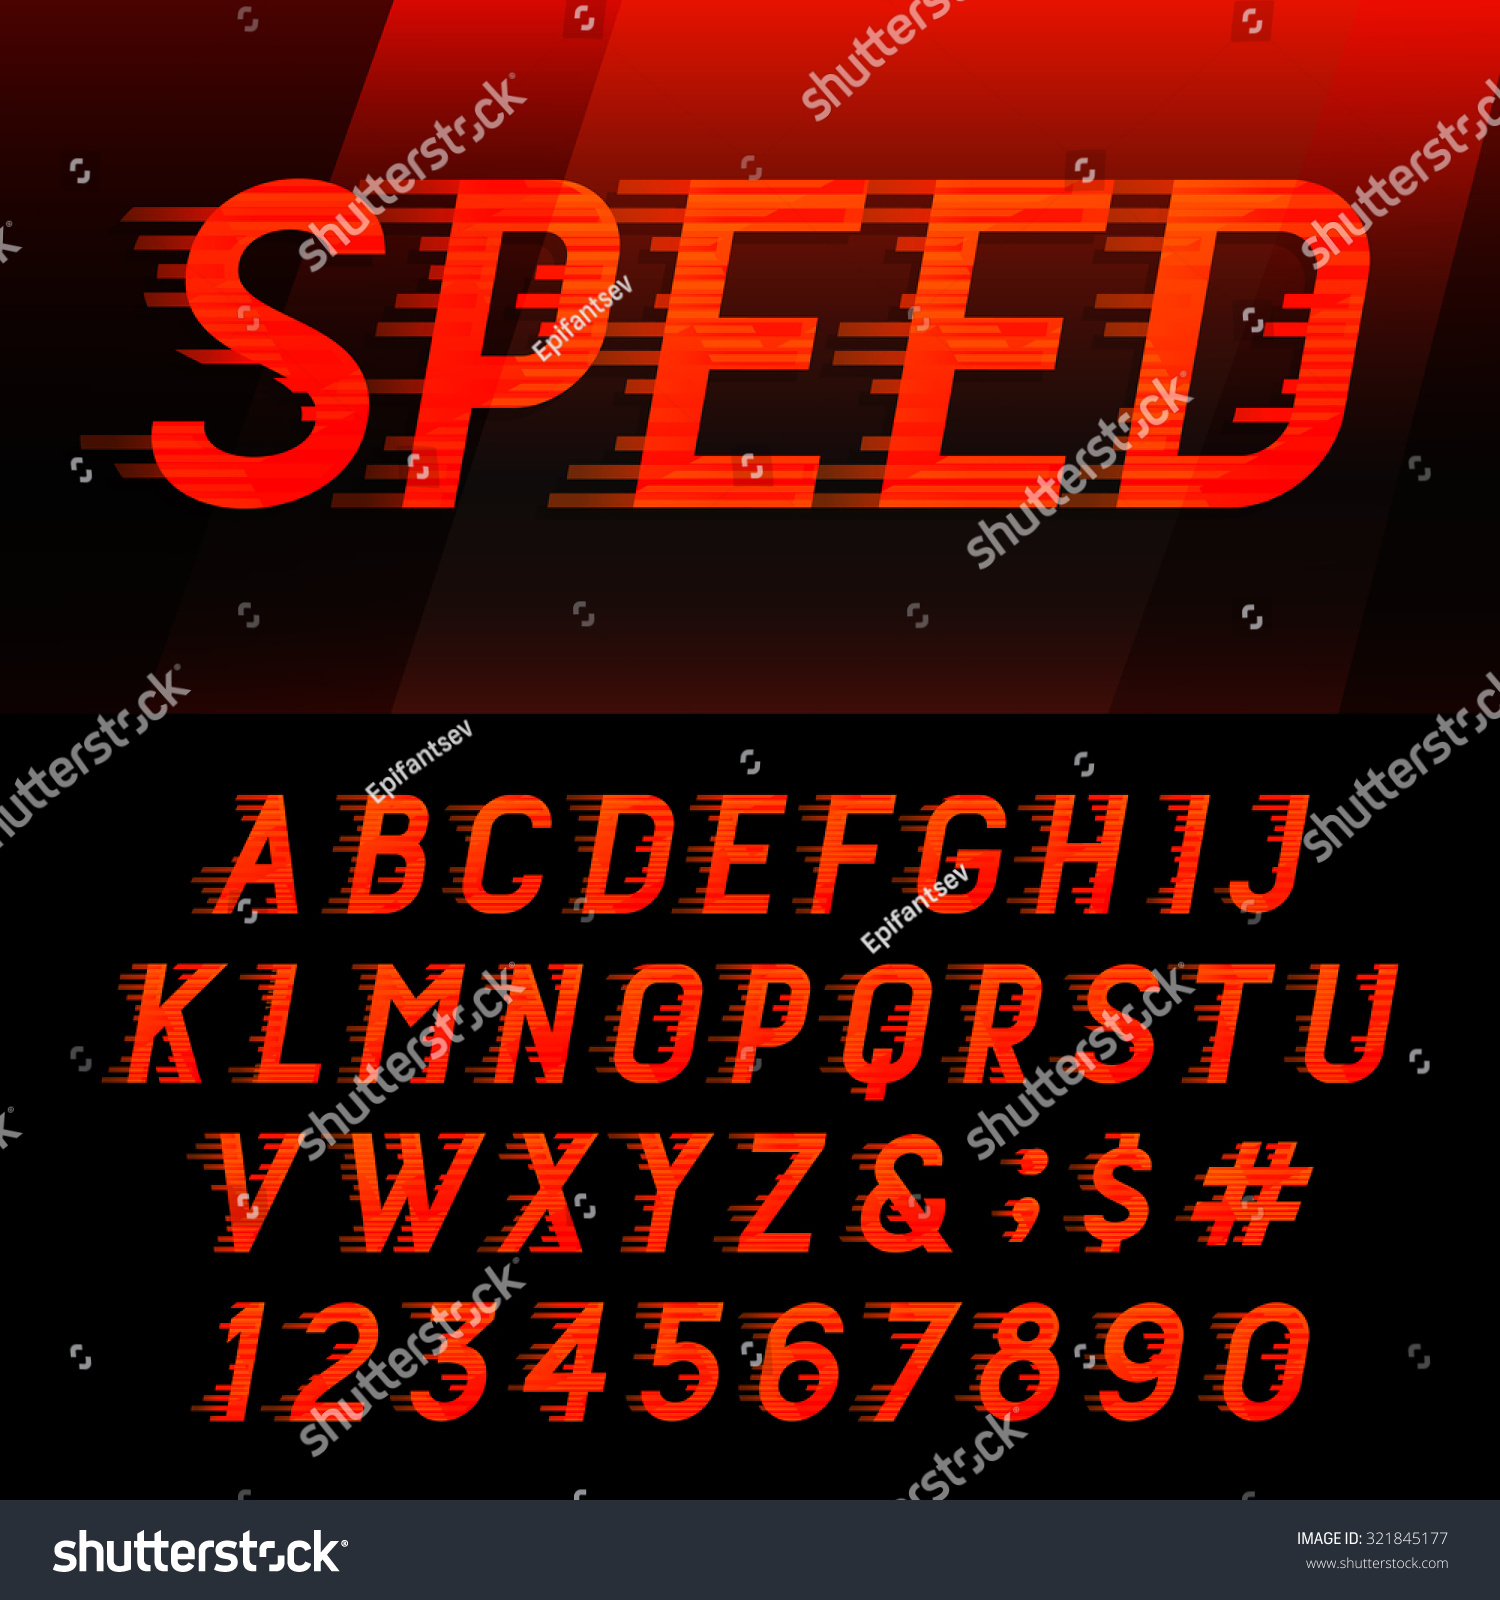 motion effect letters numbers and symbols vector typeset for headlines